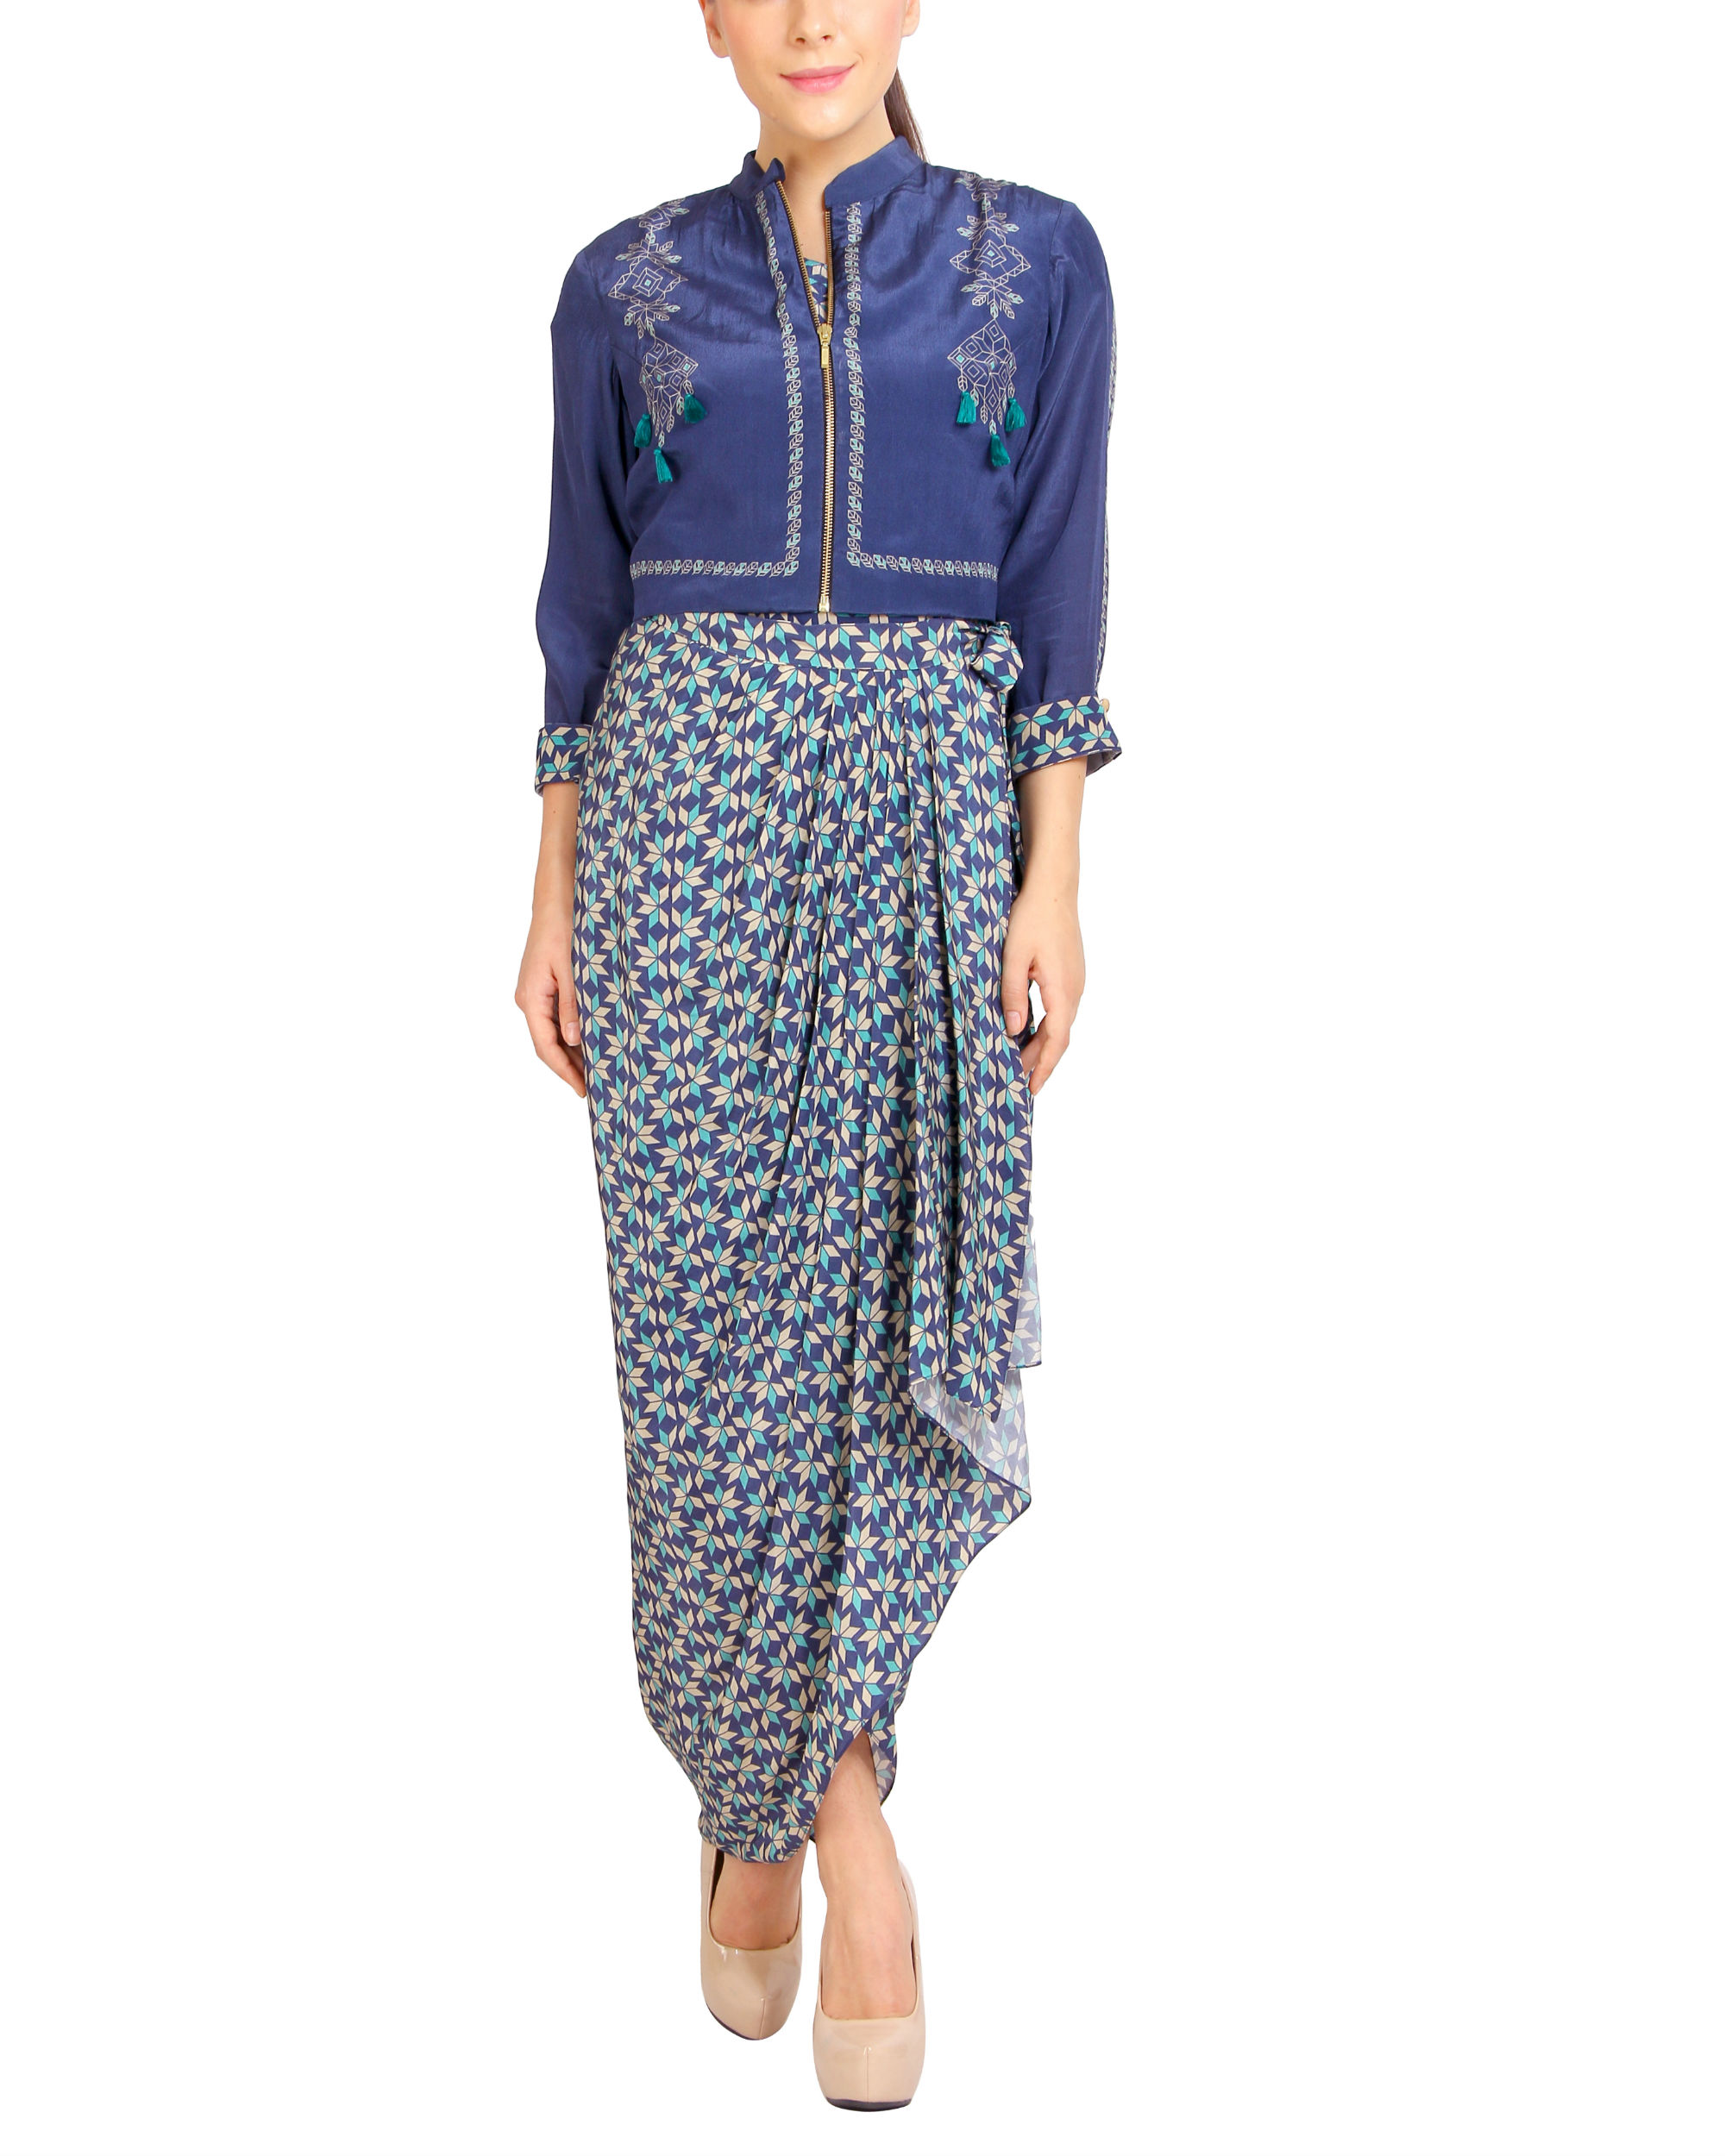 Blue pleated dhoti dress with a zipper jacket